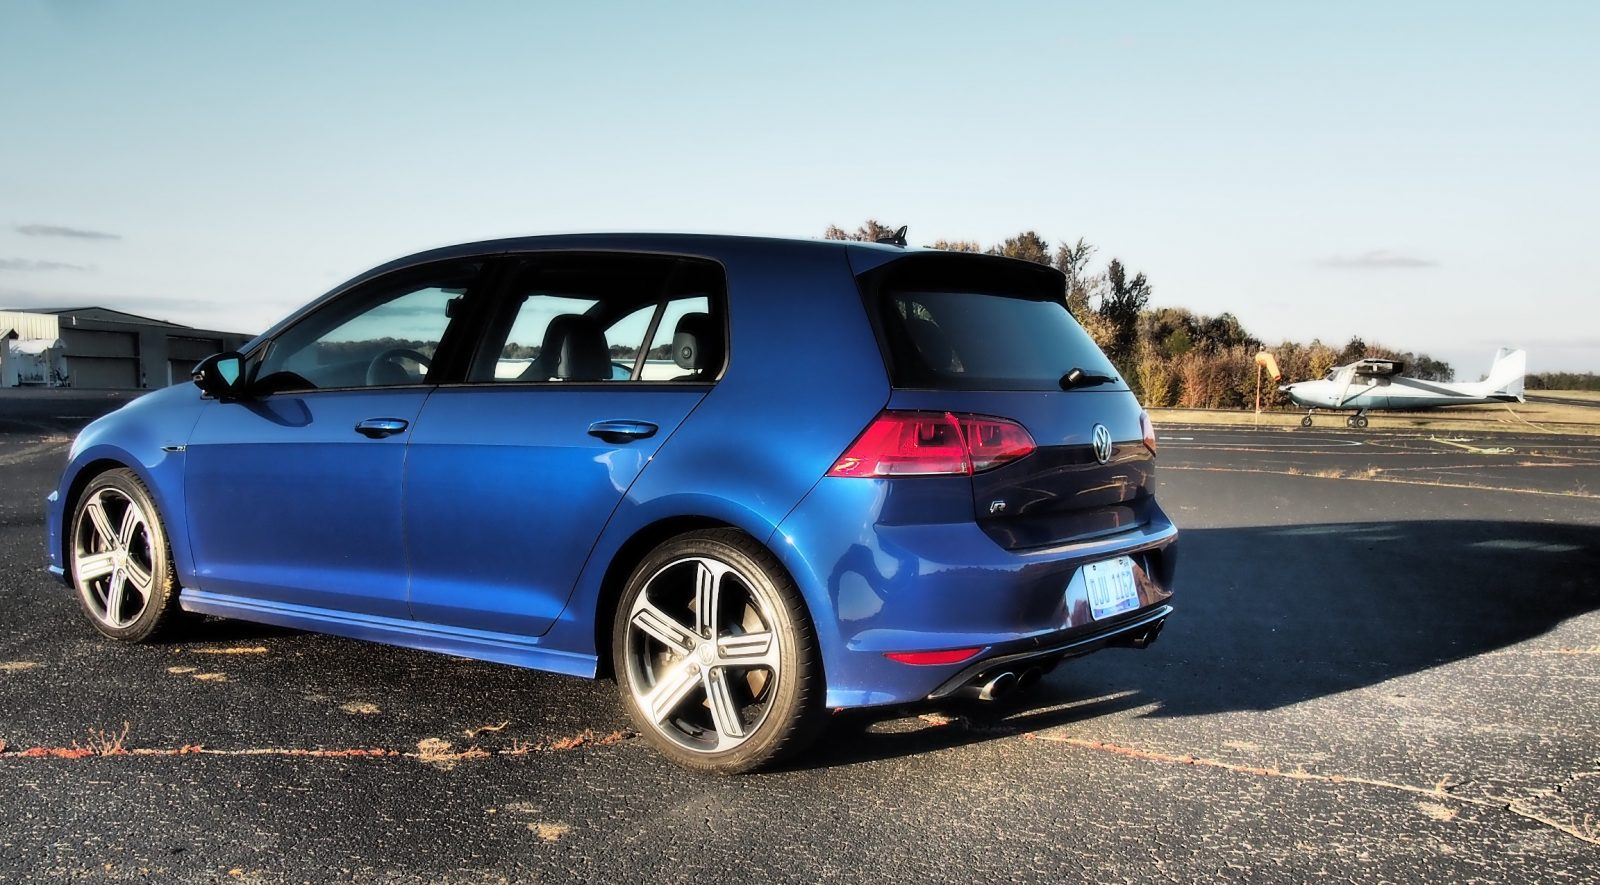 2016 vw golf r lapiz blue by lyndon johnson 3. Black Bedroom Furniture Sets. Home Design Ideas